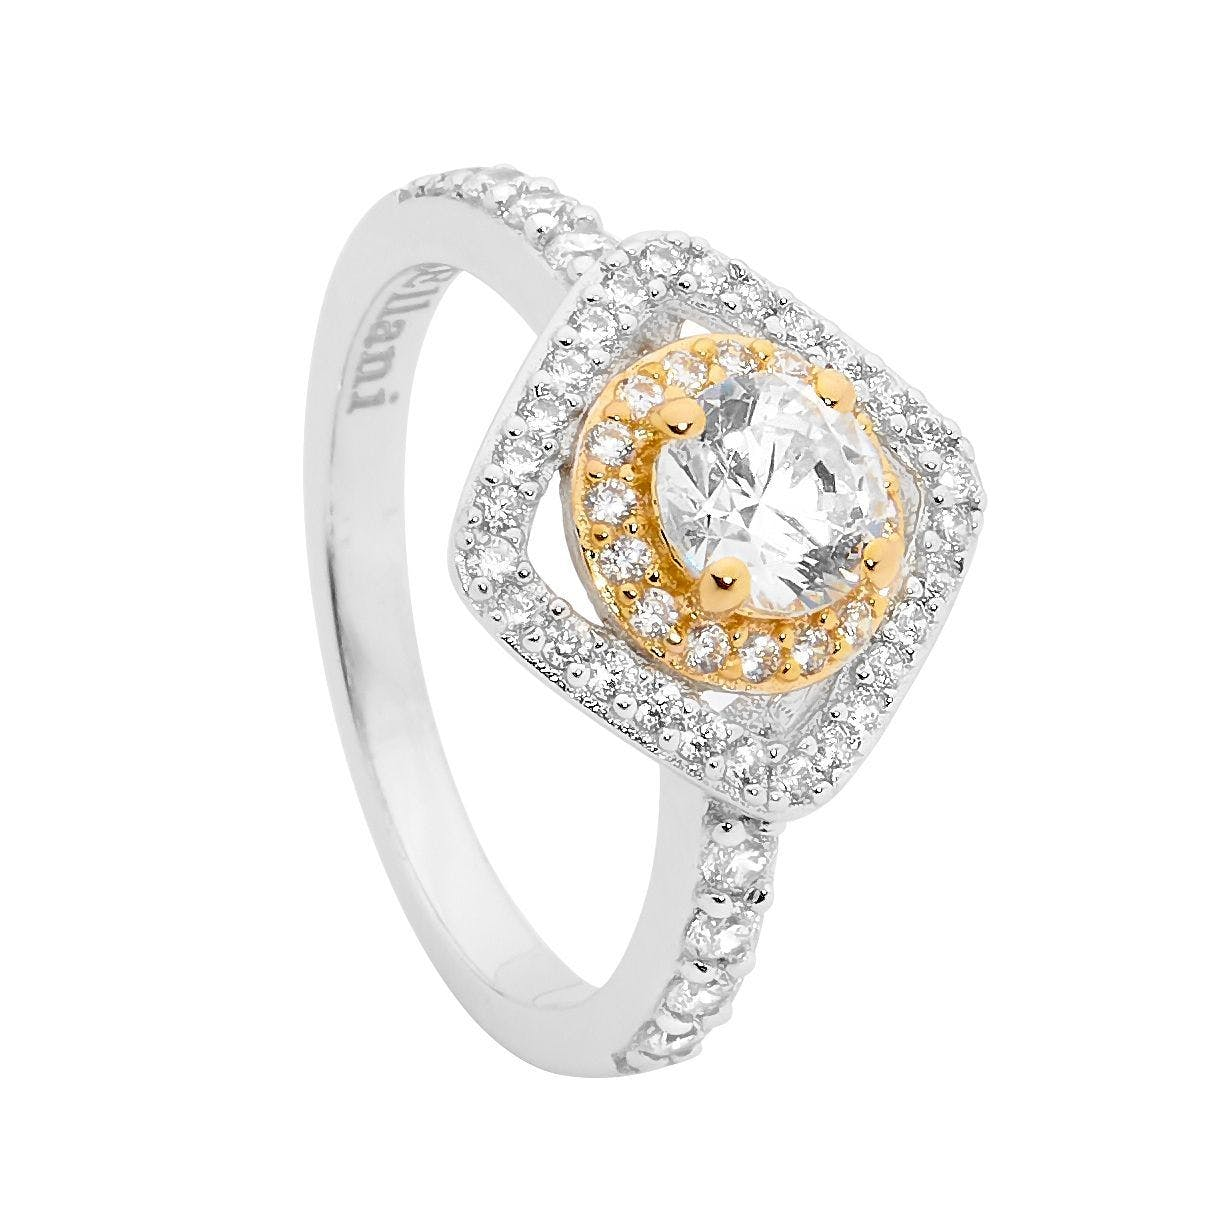 SS CZ Solitaire Round & Square Halo Ring